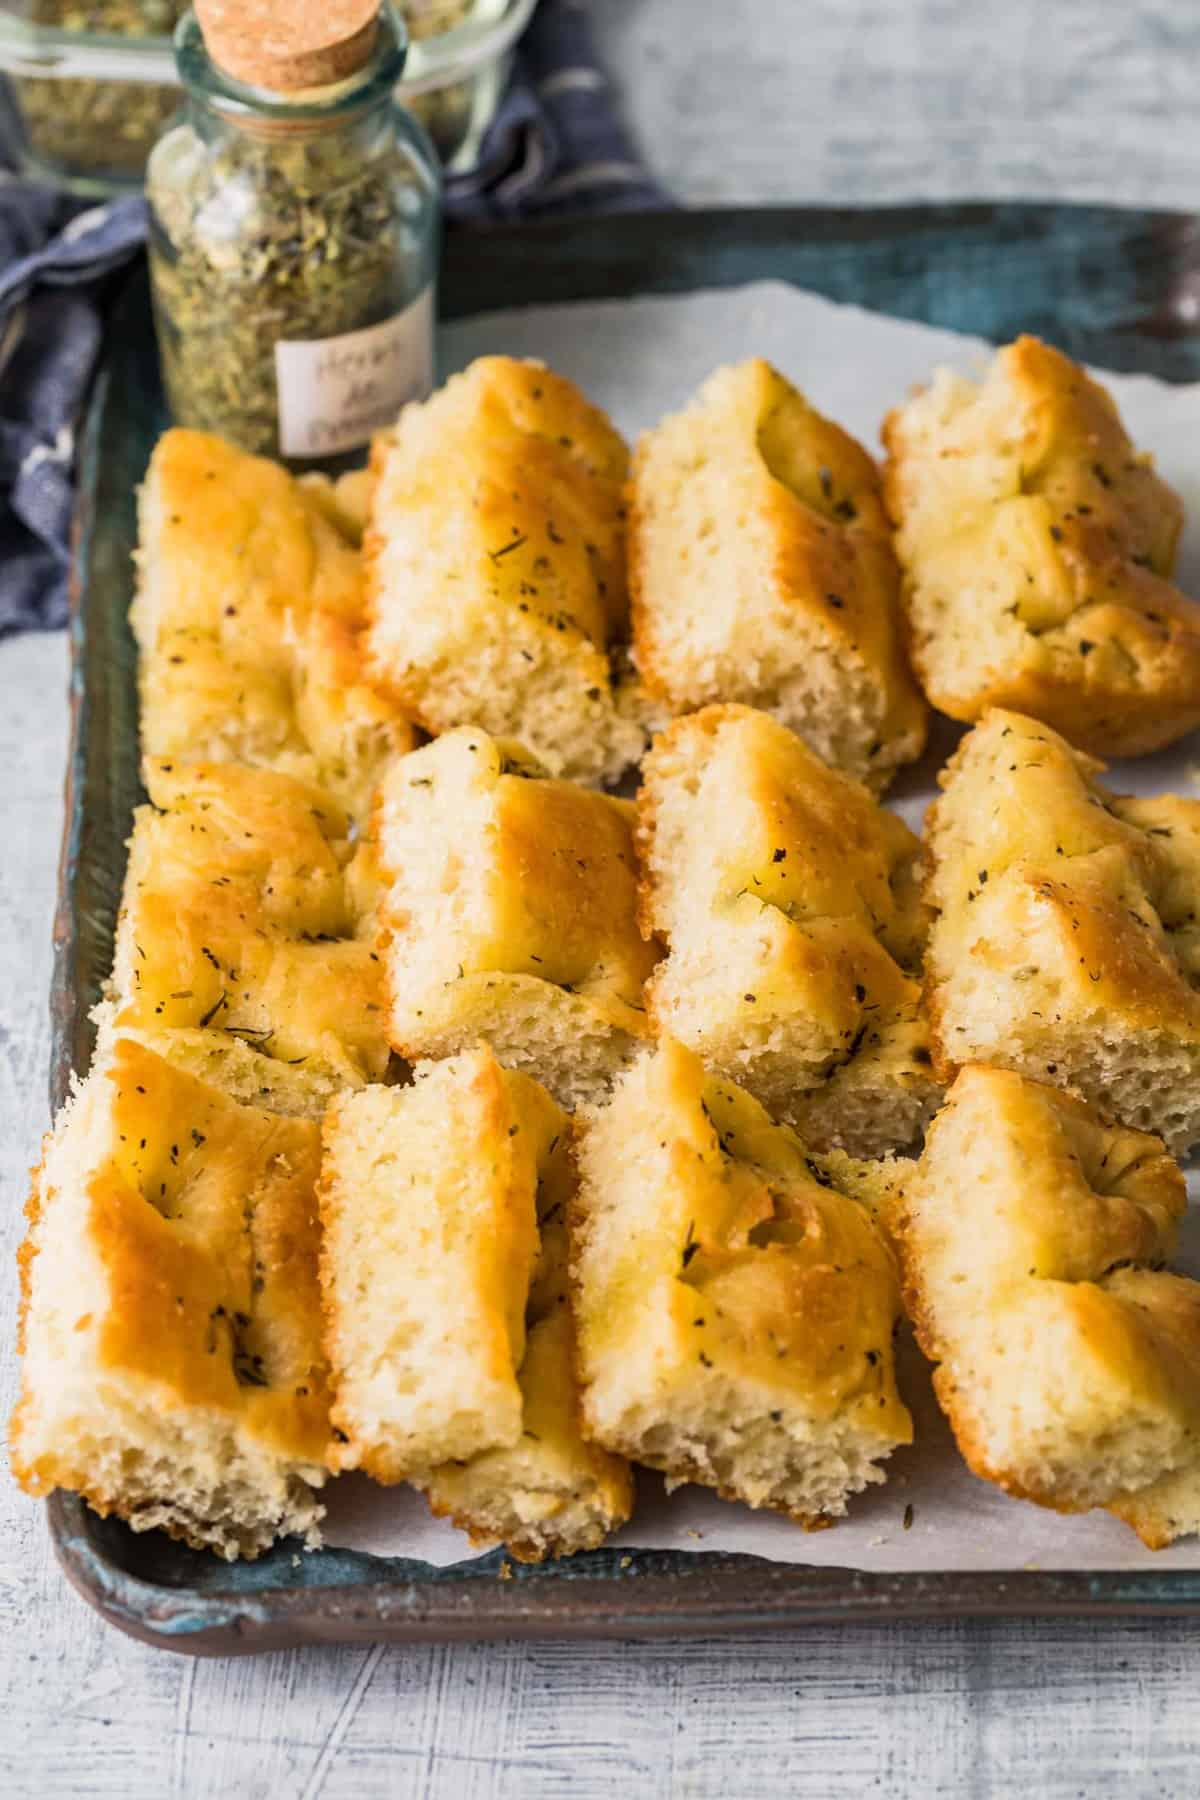 Focaccia bread on a serving tray